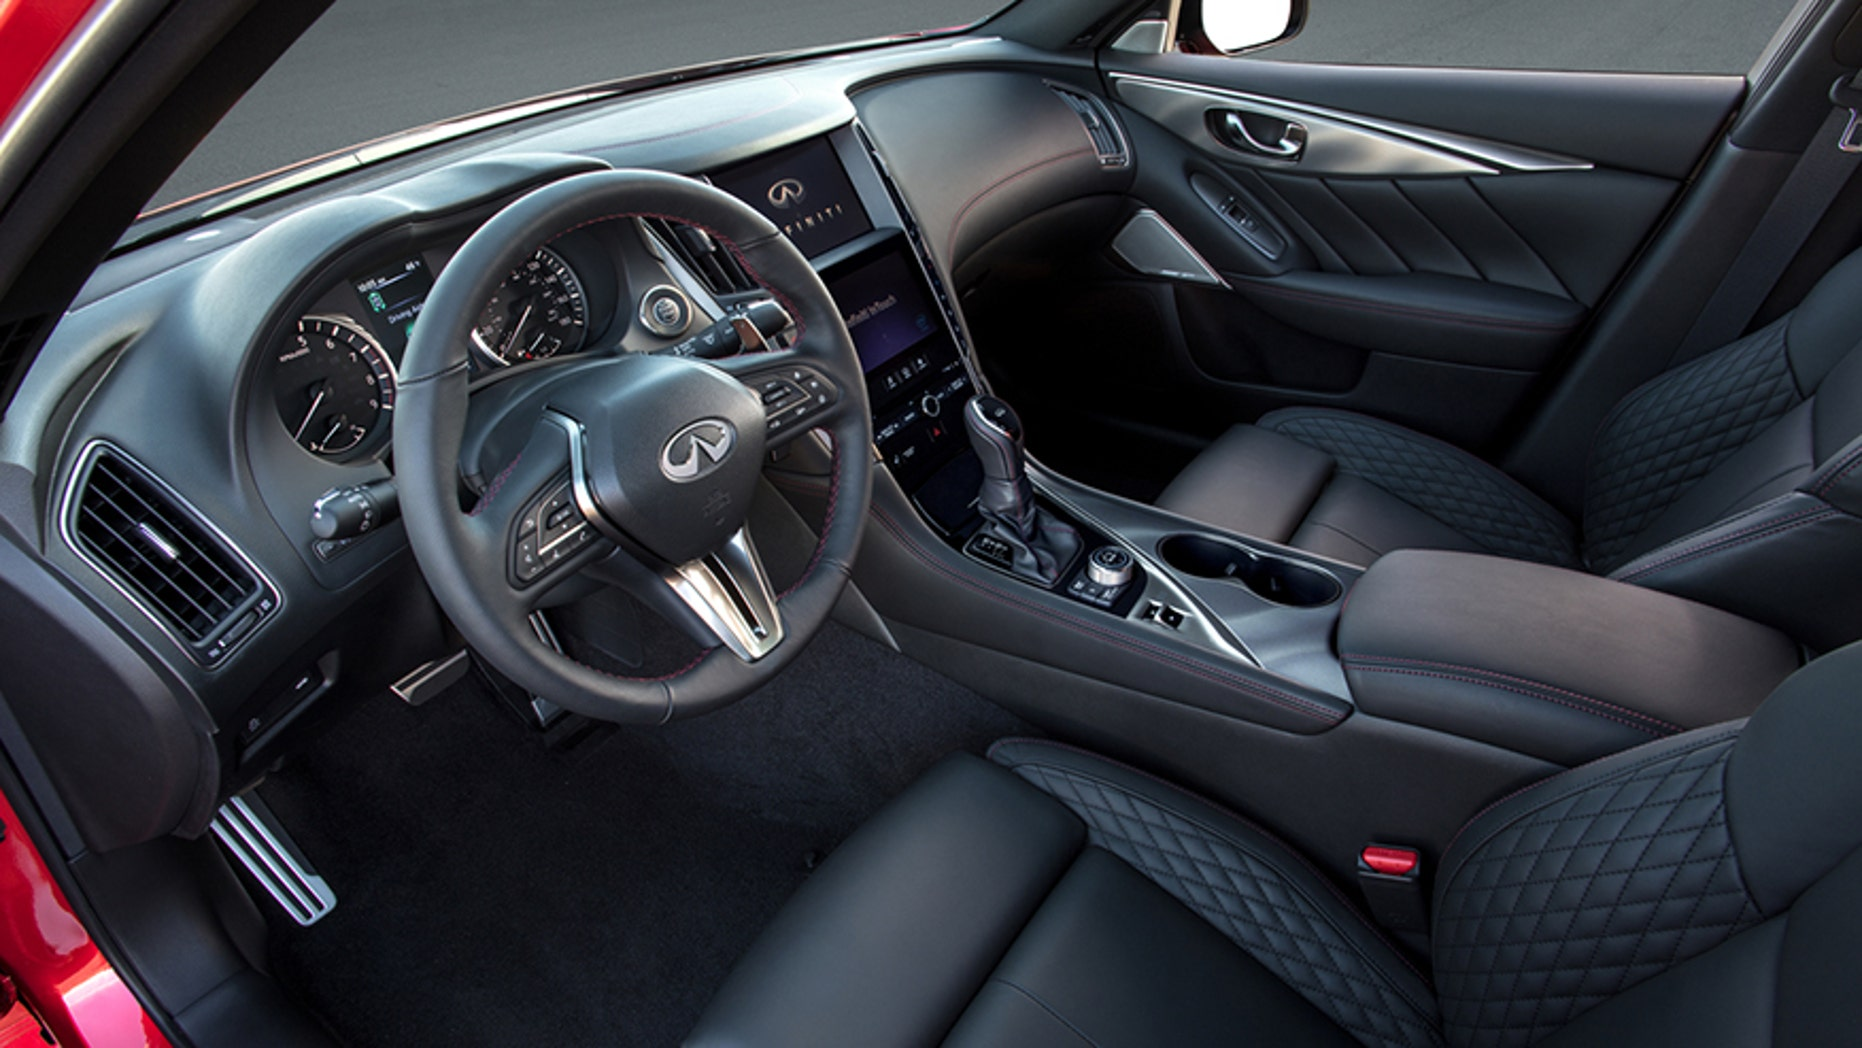 The 2018 Infiniti Q50 Sports Sedan Features A Refreshed Exterior And Interior Design As Well